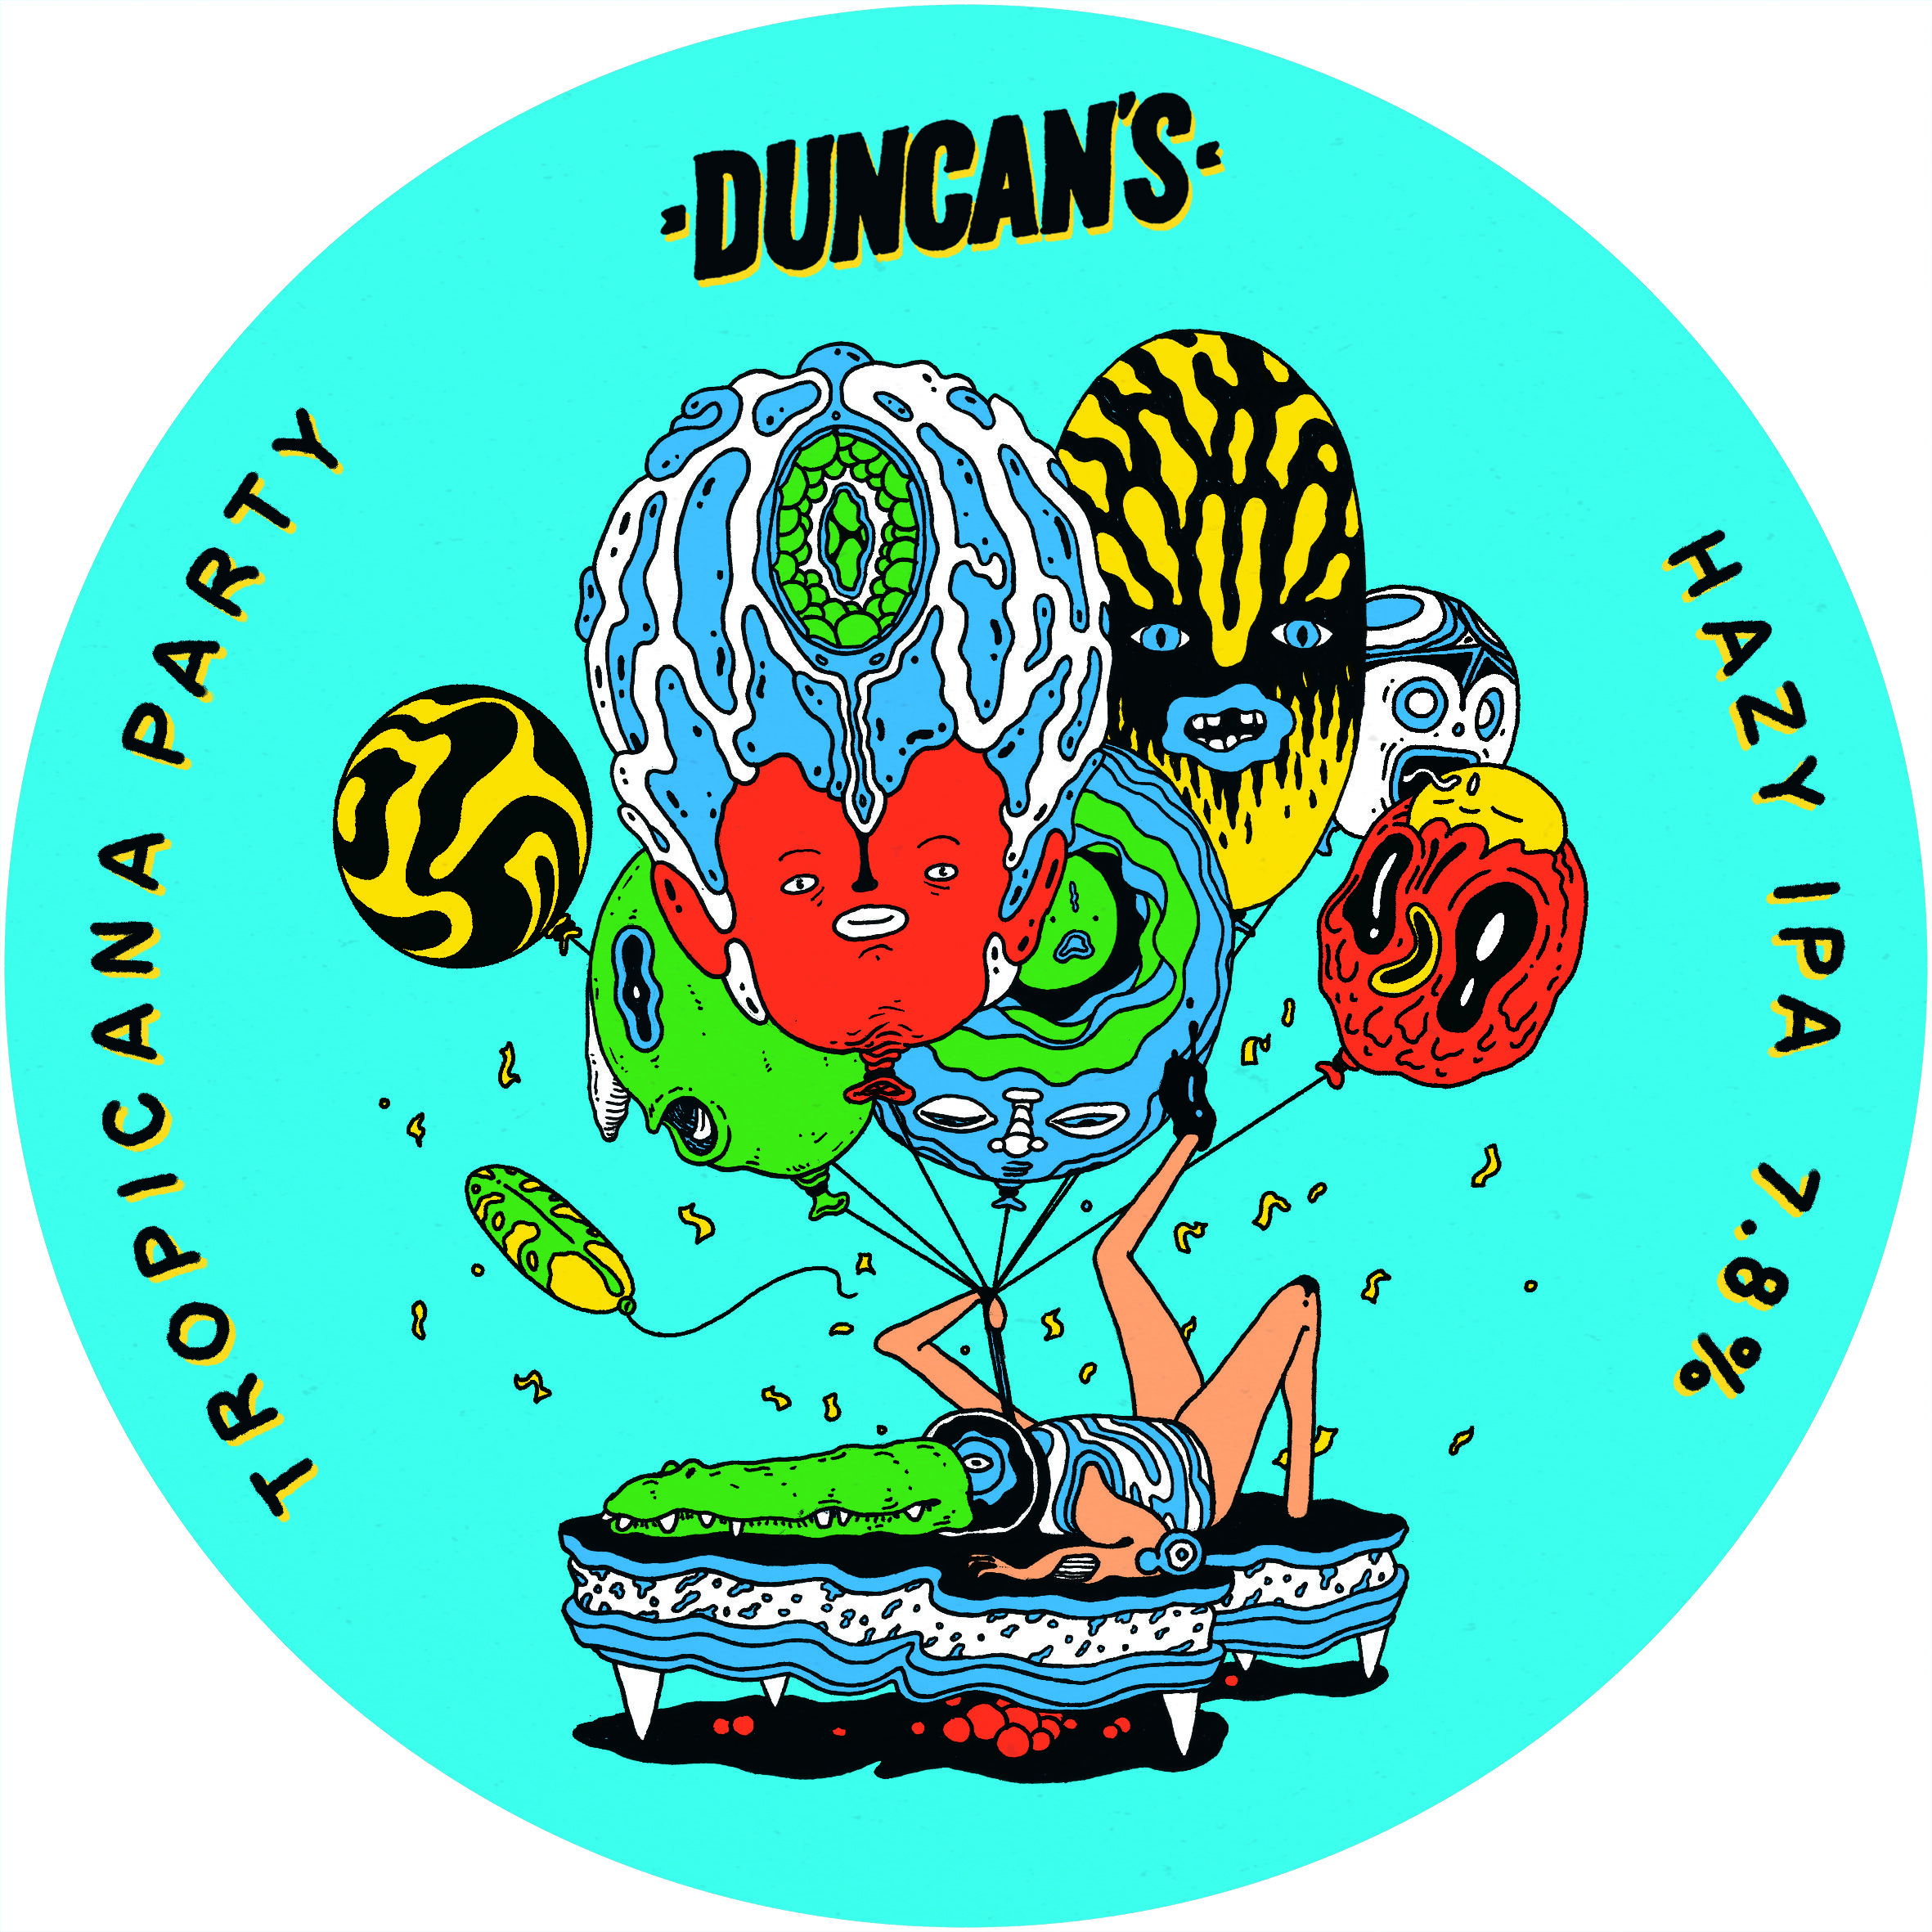 duncans-tropicana-party-hazy-tap.jpg